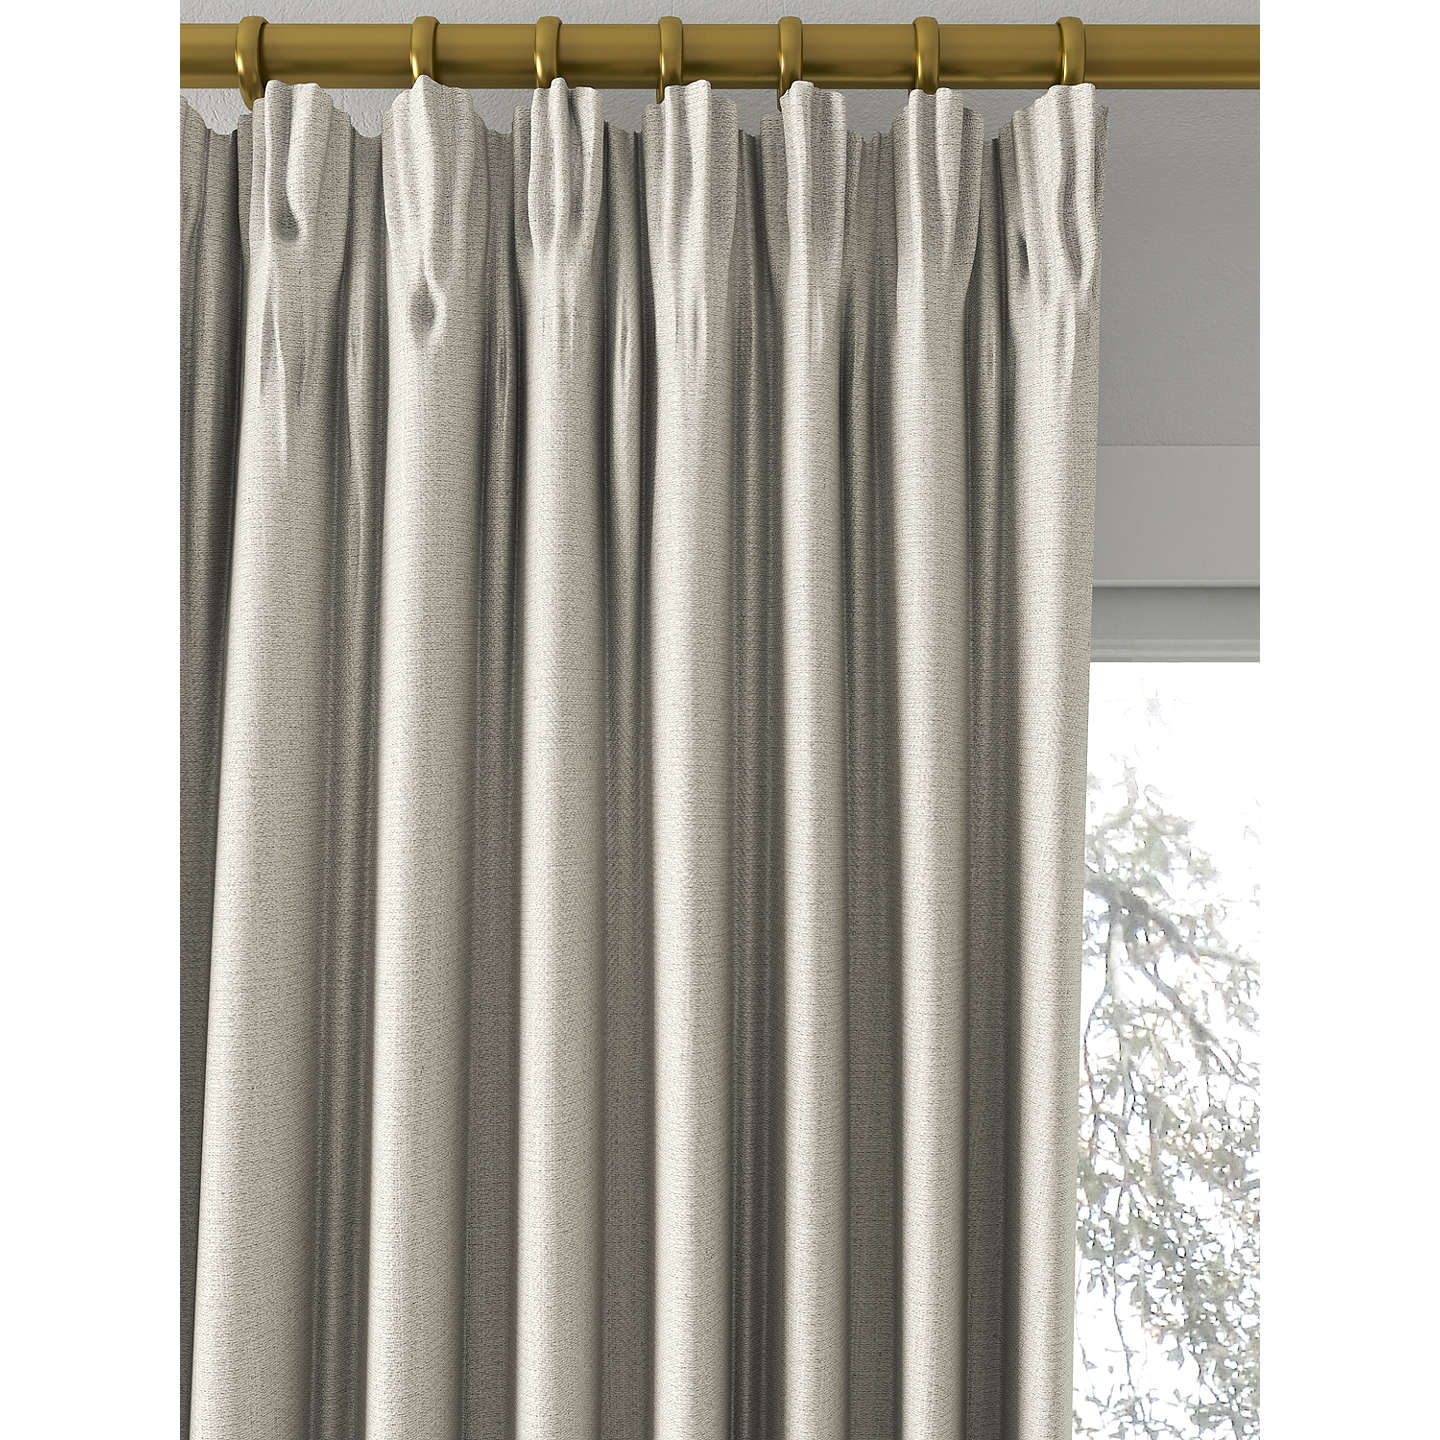 BuyCroft Collection Herringbone Curtain, Mole Online at johnlewis.com